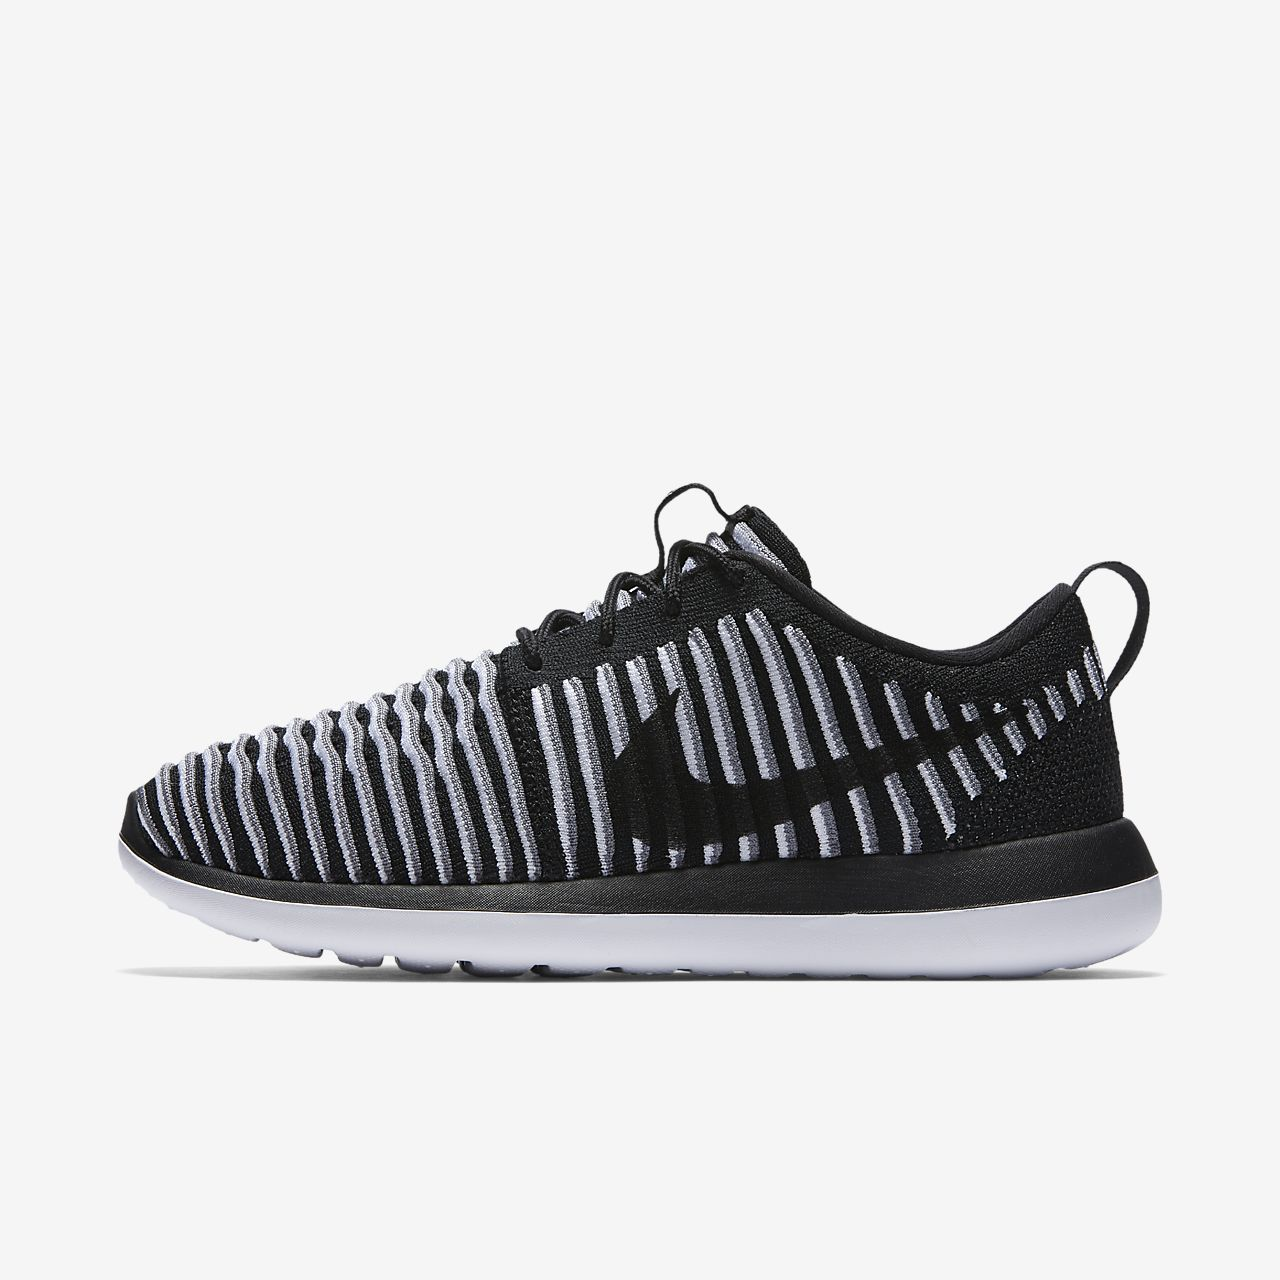 Nike Roshe Two Flyknit Womens Shoes Black White Cool Grey 001 Multiple Sizes